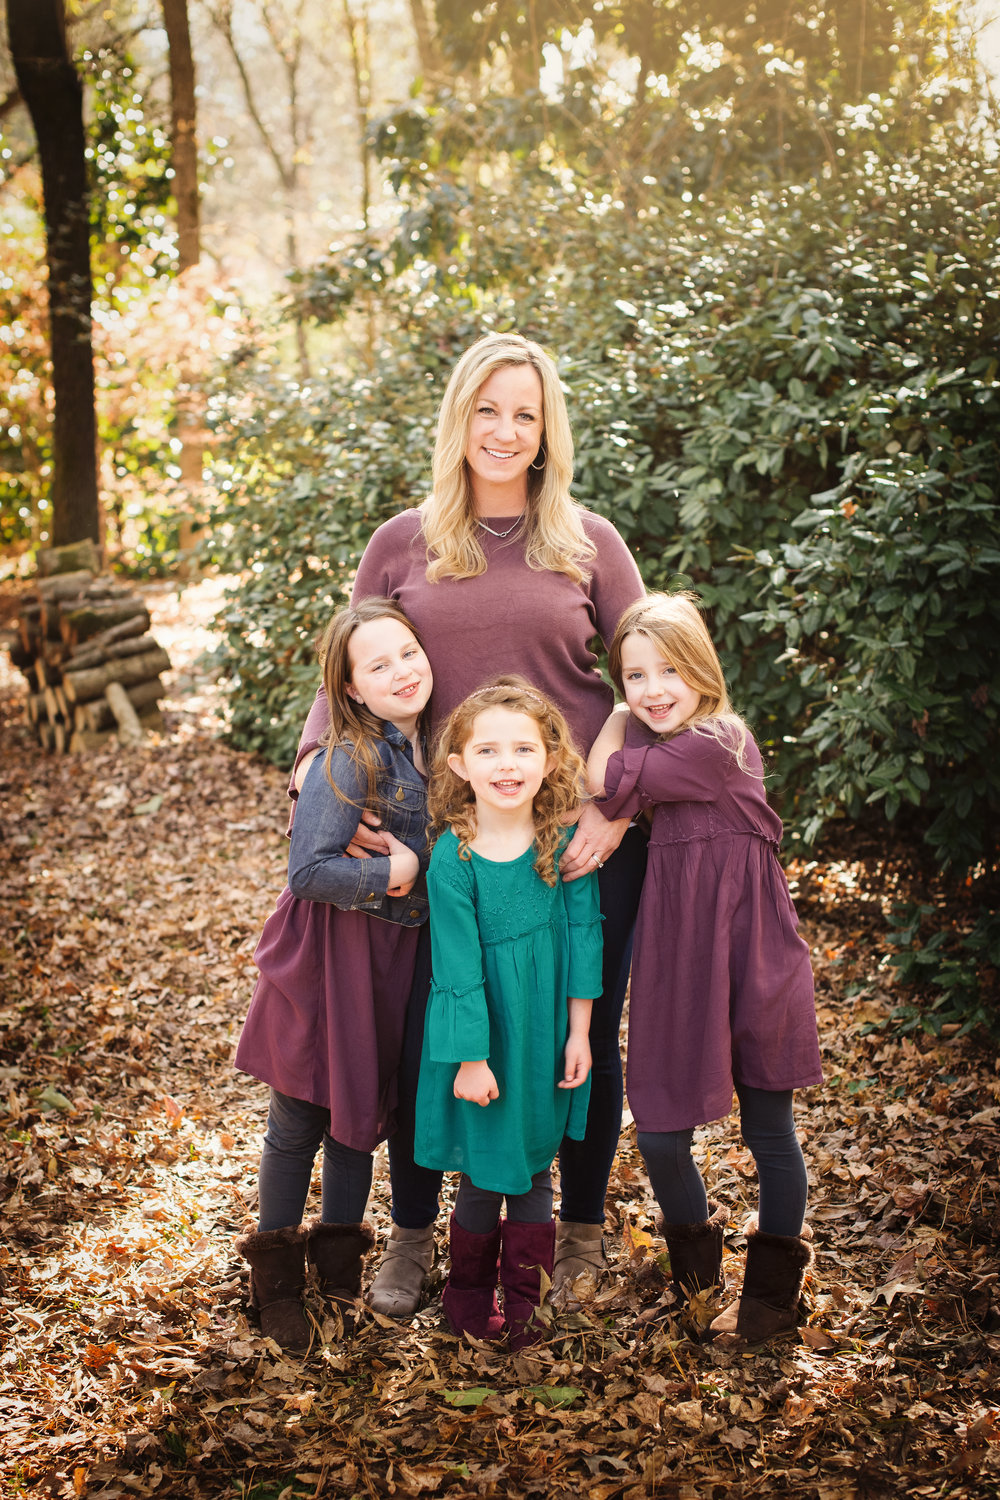 germantownfamilyphotographer-97.jpg